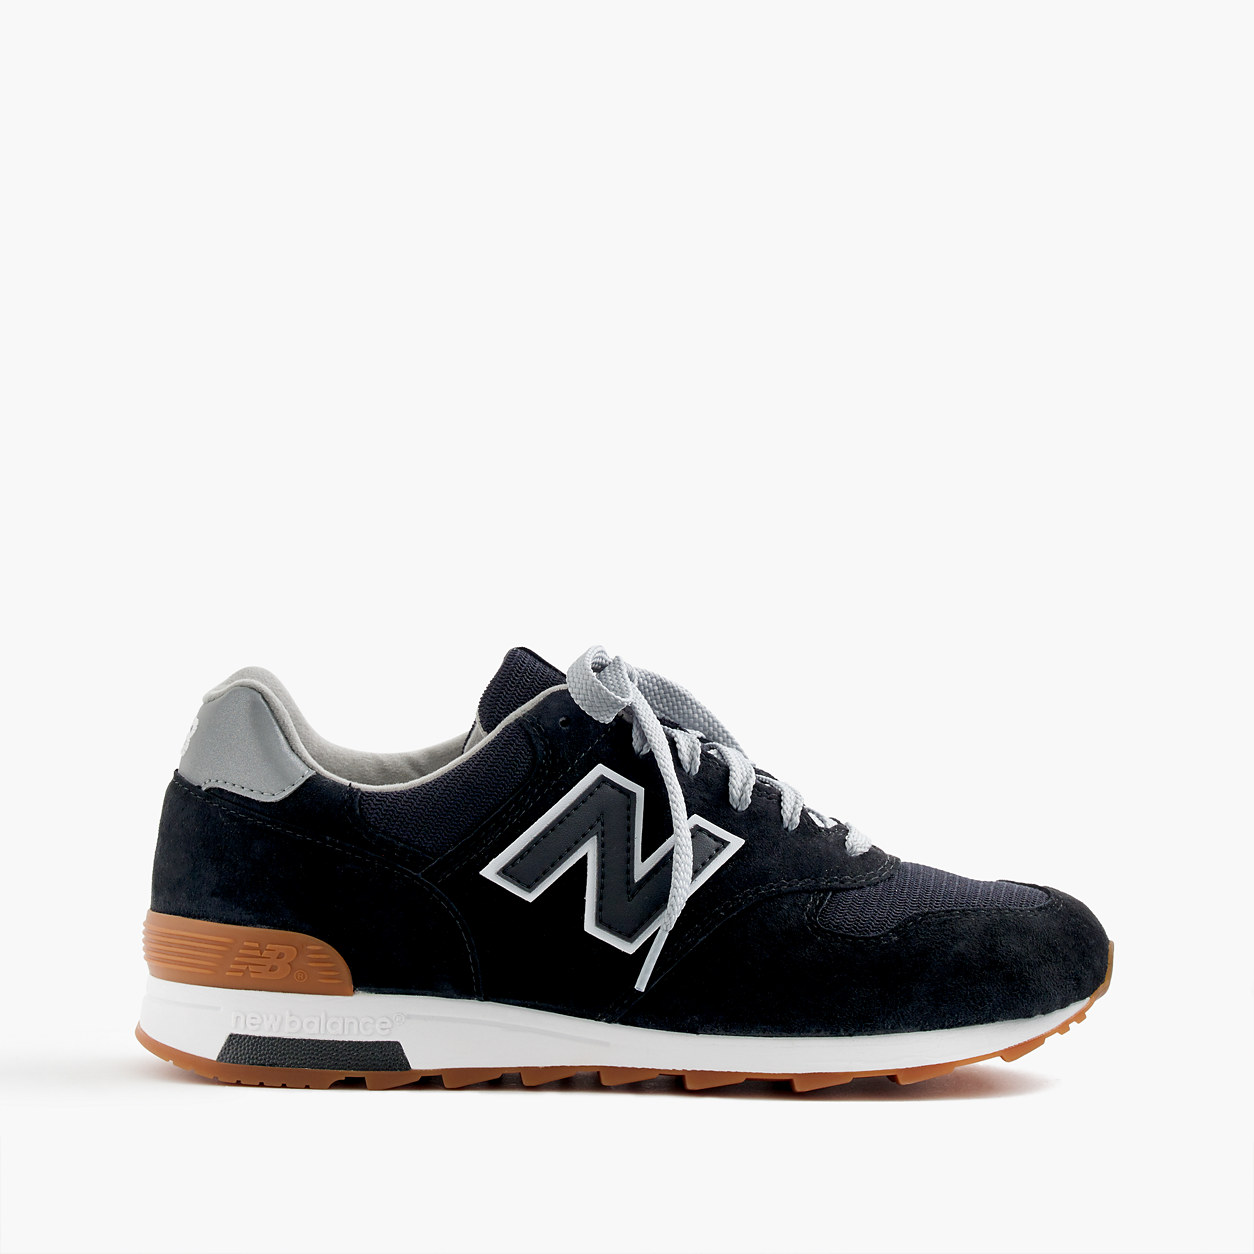 new balance outlet online shoes